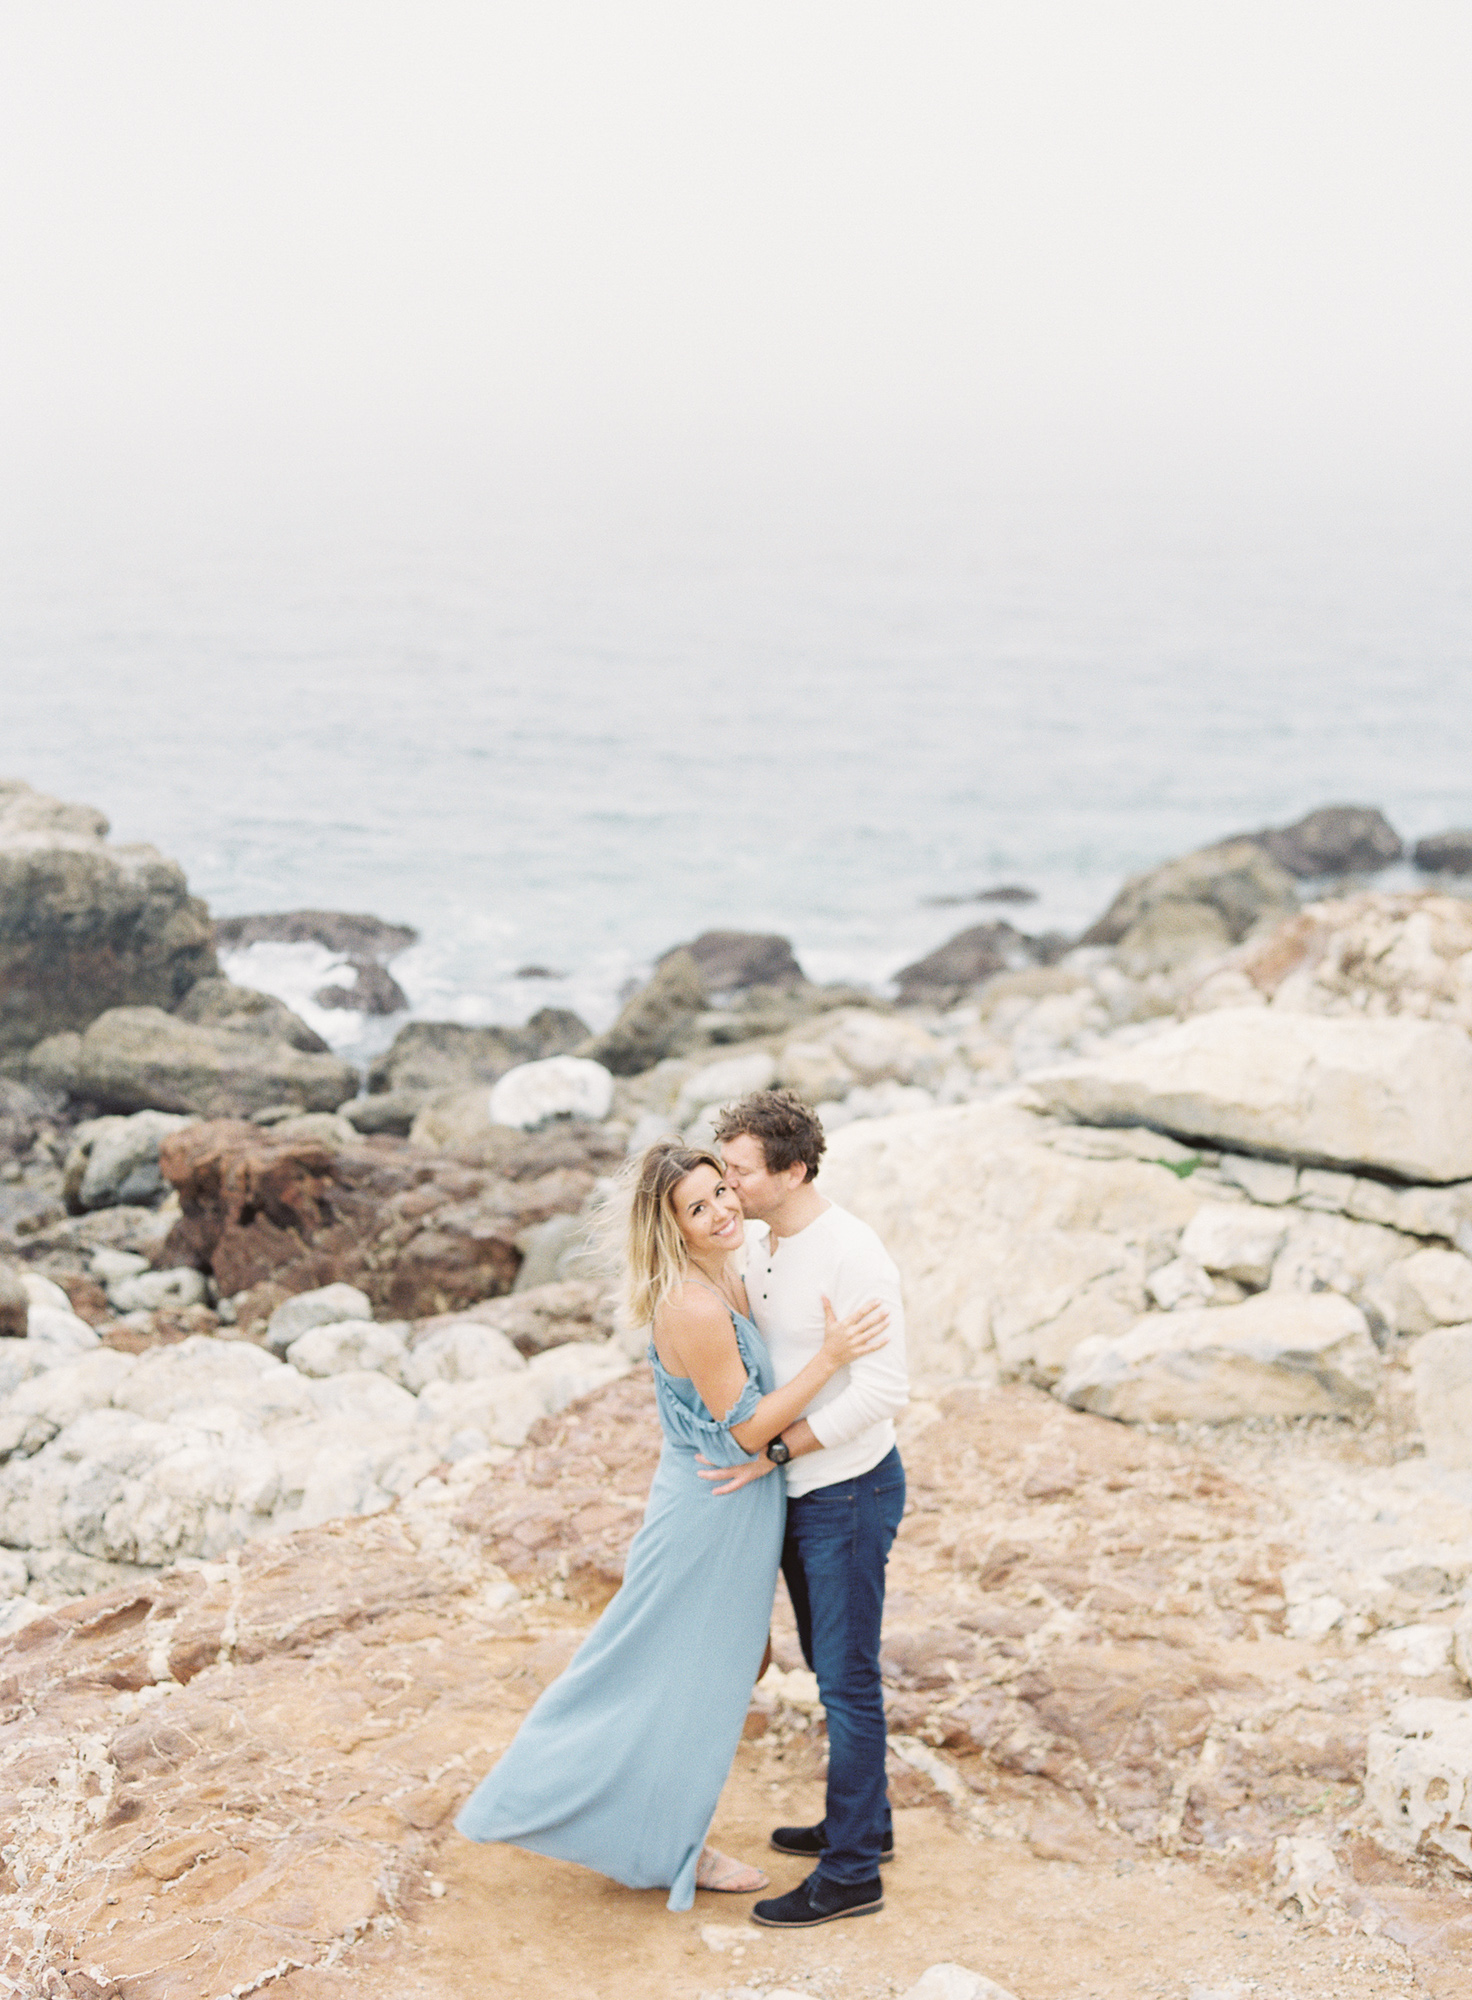 Terranea-engagement-session-los-angeles-5.jpg